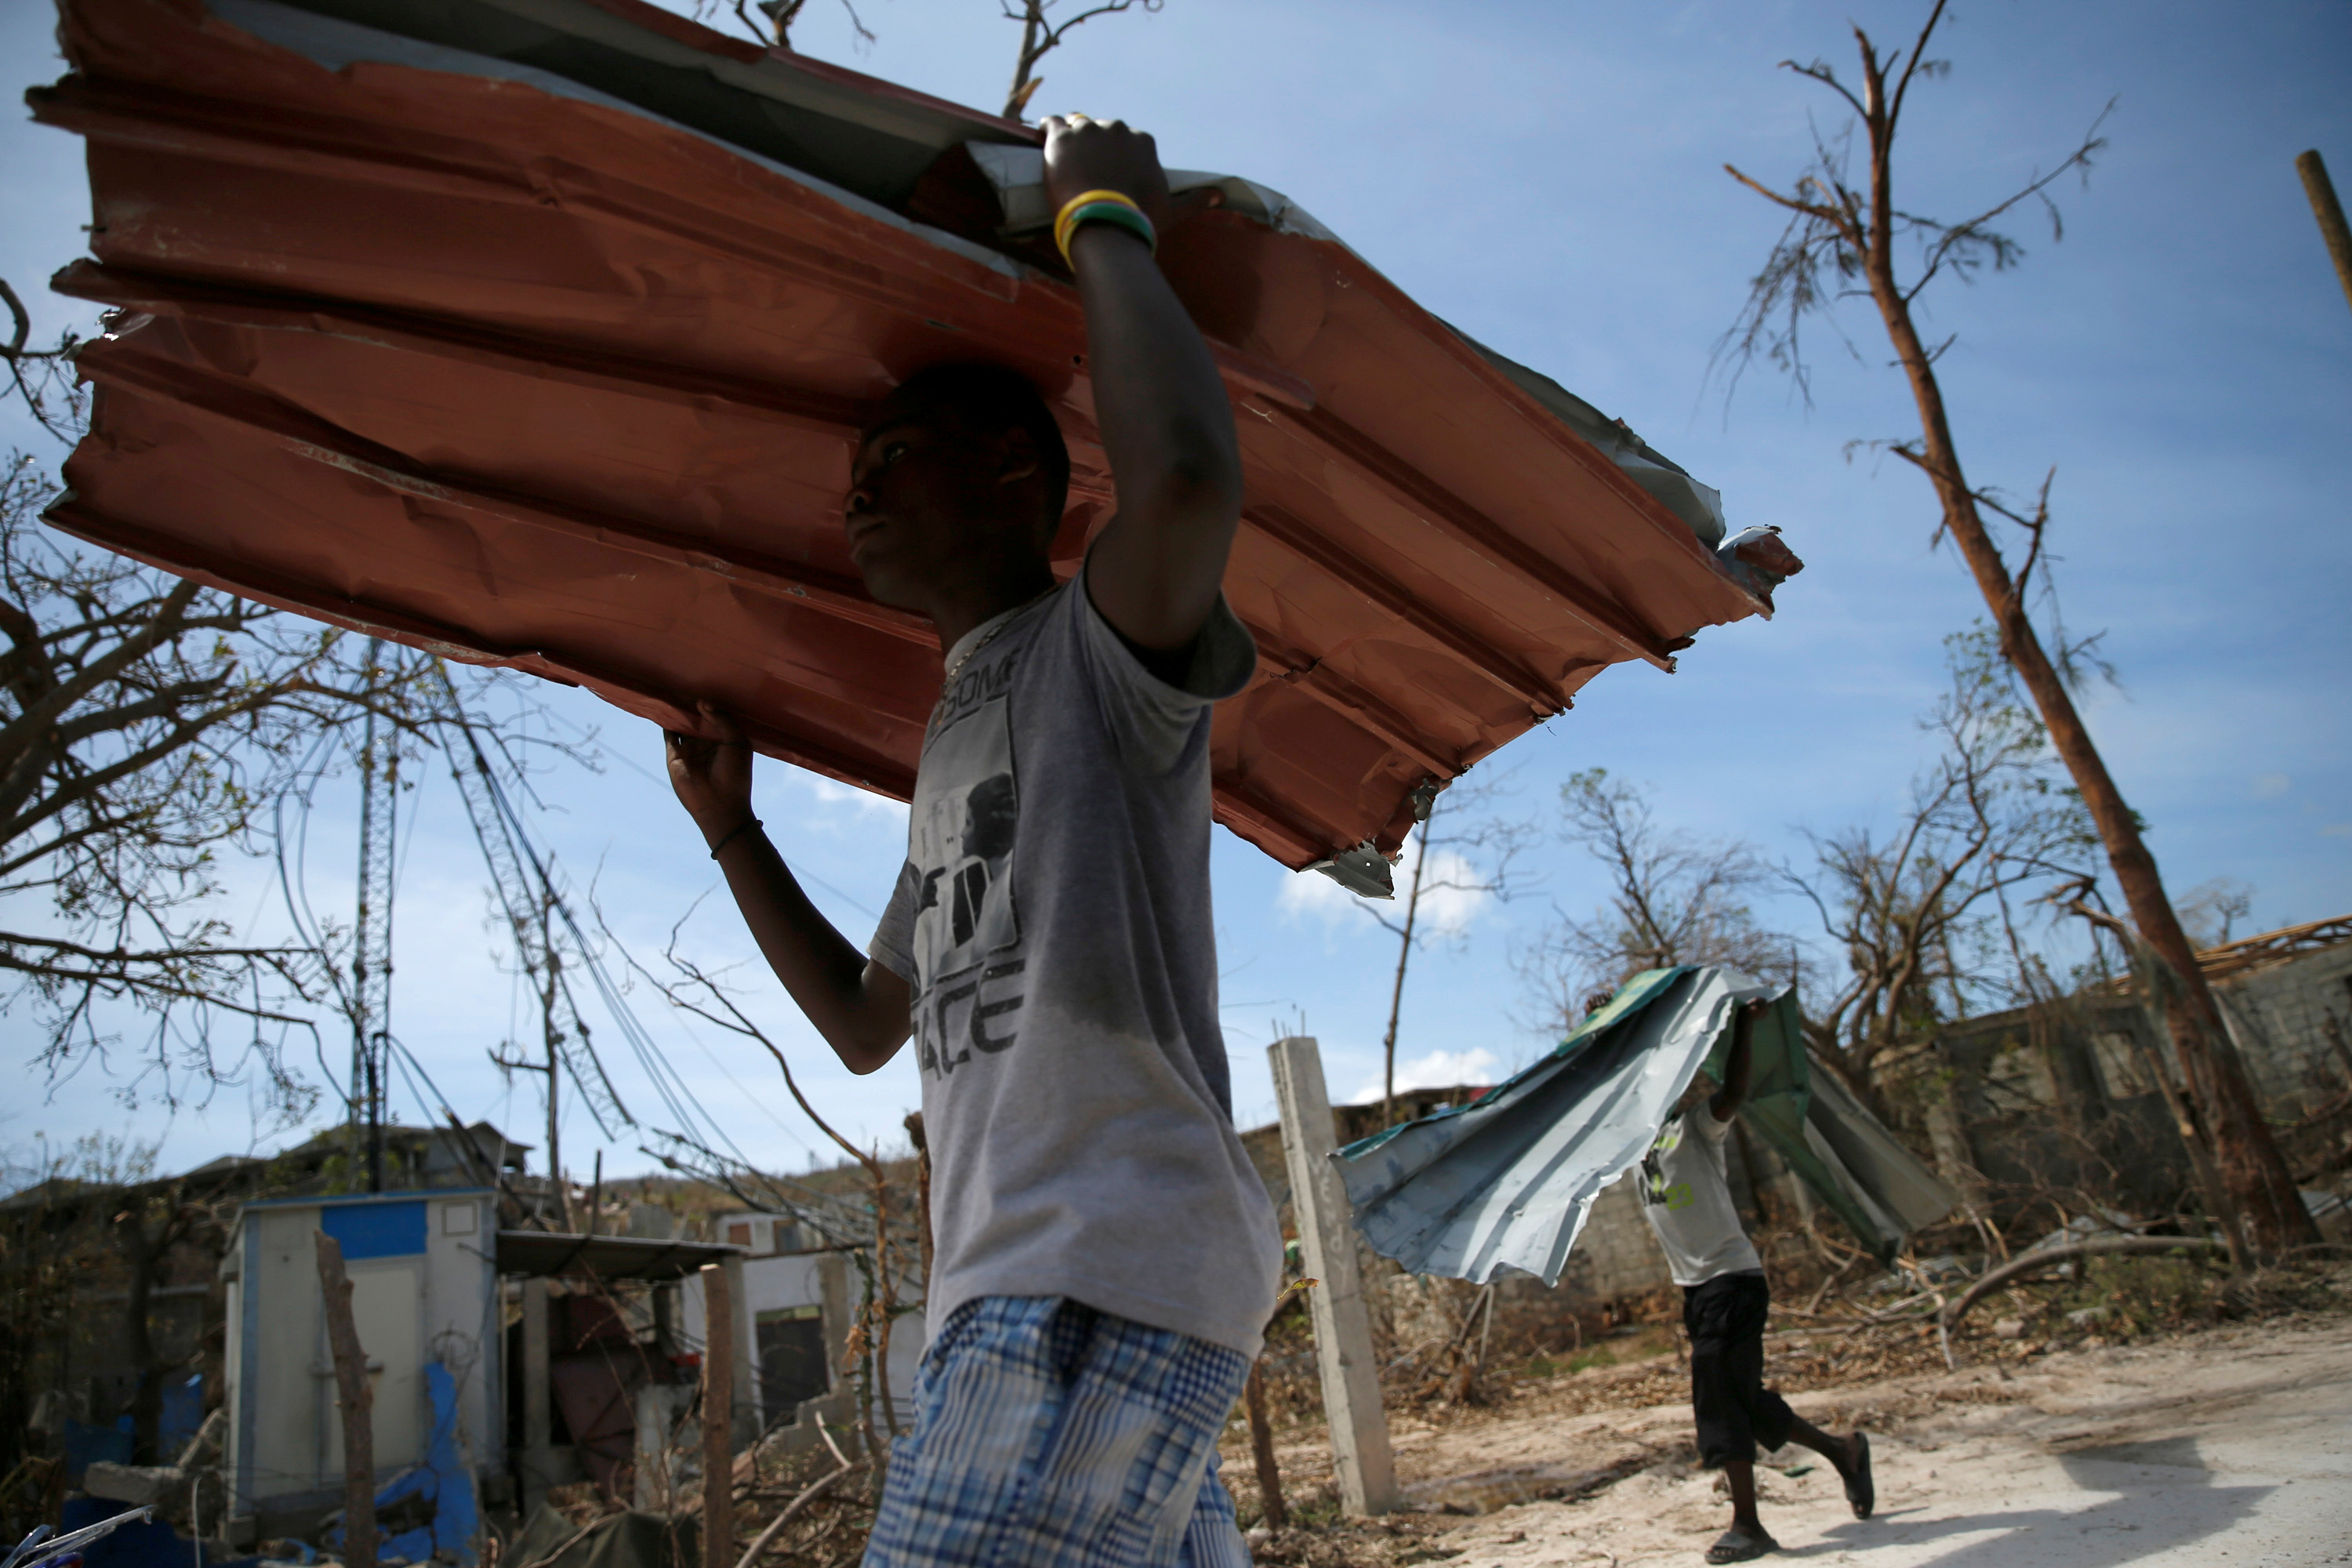 Men carry metal sheets to help rebuild homes in the commune of Jeremie, Haiti. Photo by Carlos Garcia Rawlins/Reuters